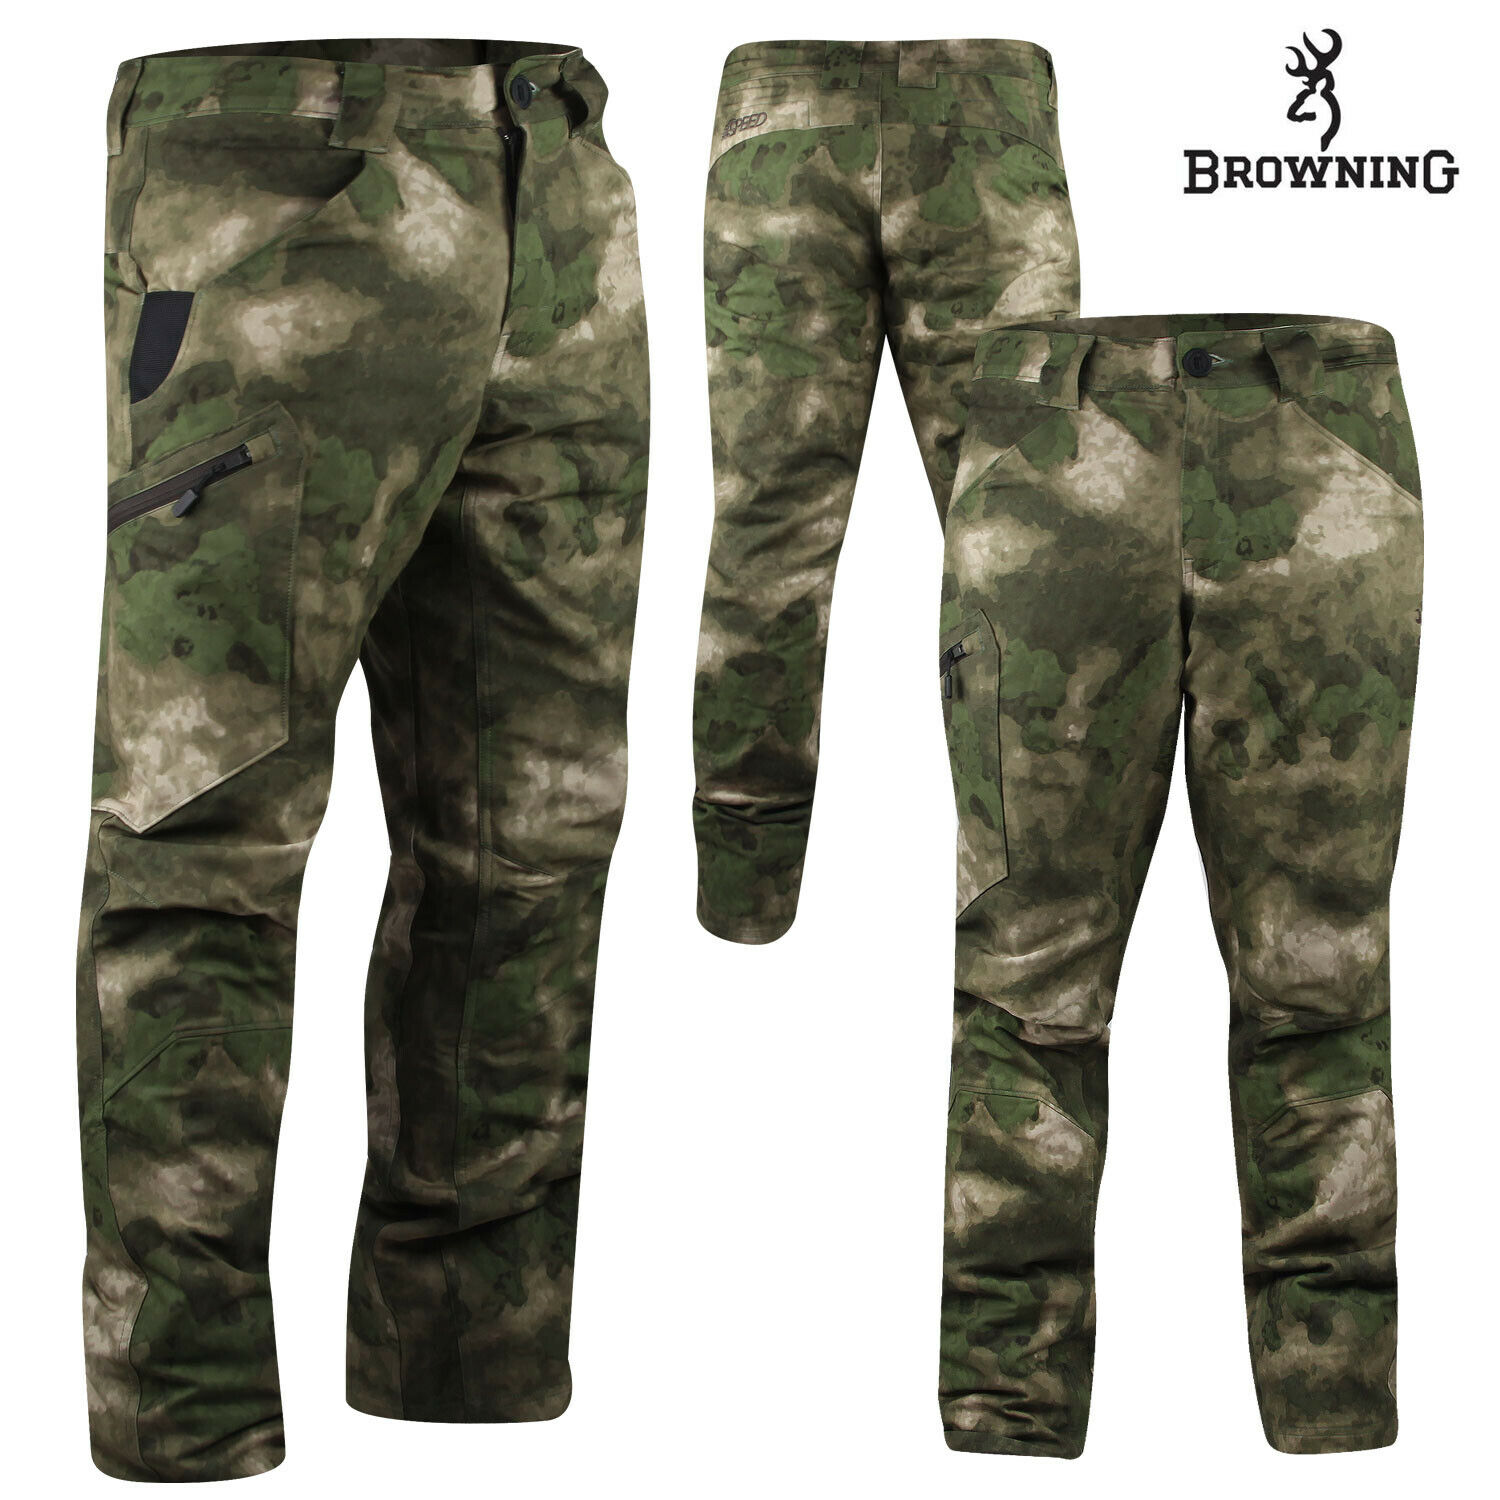 Browning Hell's  Canyon Speed Javelin Pants (44)- ATACS-FG  new products novelty items